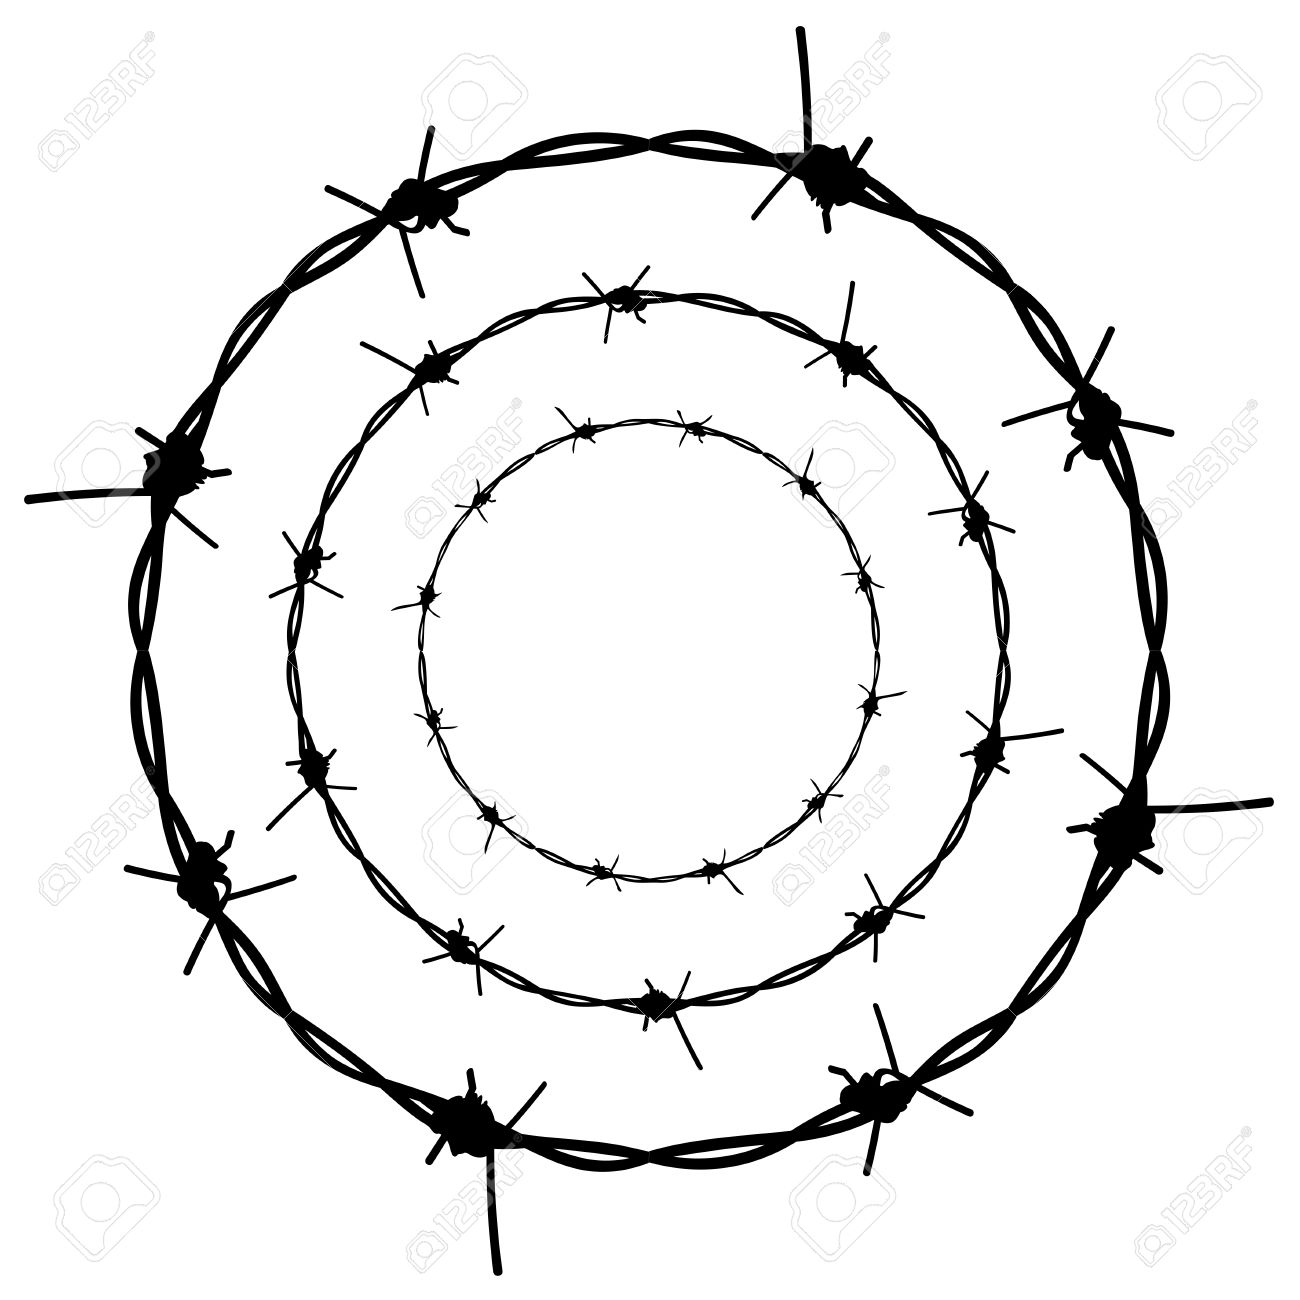 Silhouette barbed wire illustration on white background. - 57810359